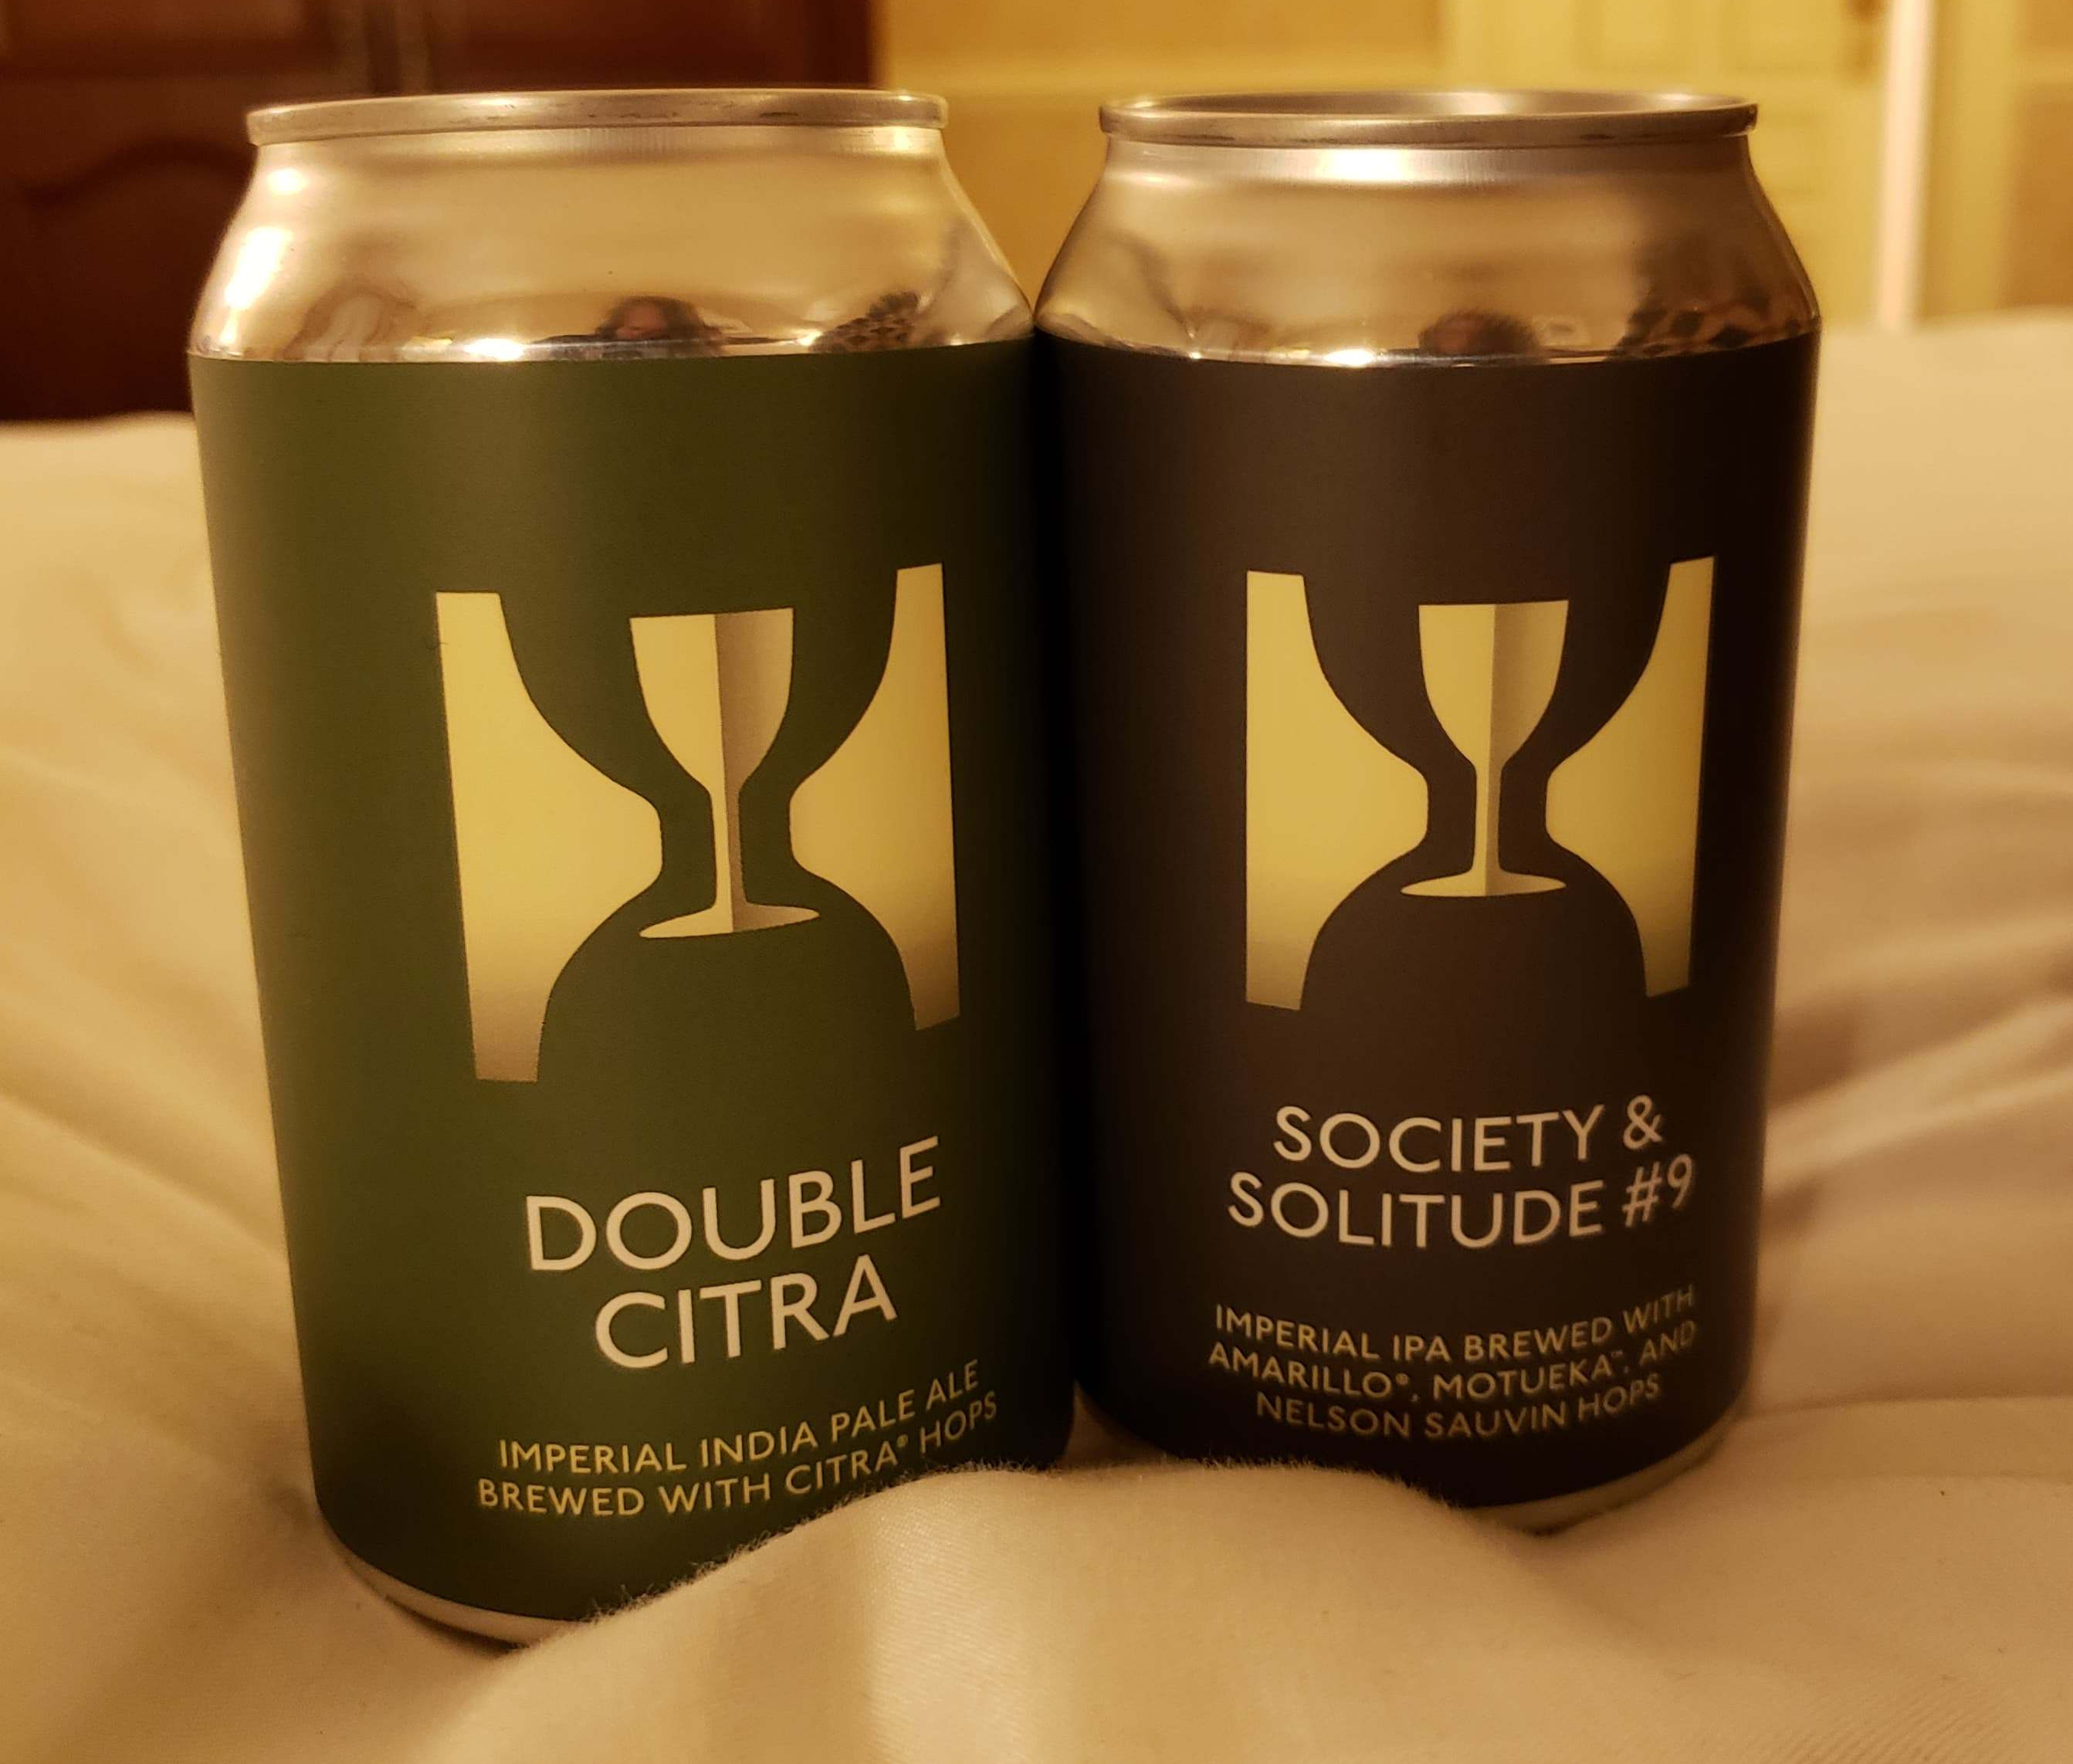 Photo of a can of Double Citra and Society & Solitude #9 from Hill Farmstead Brewery in Greensboro, Vermont.